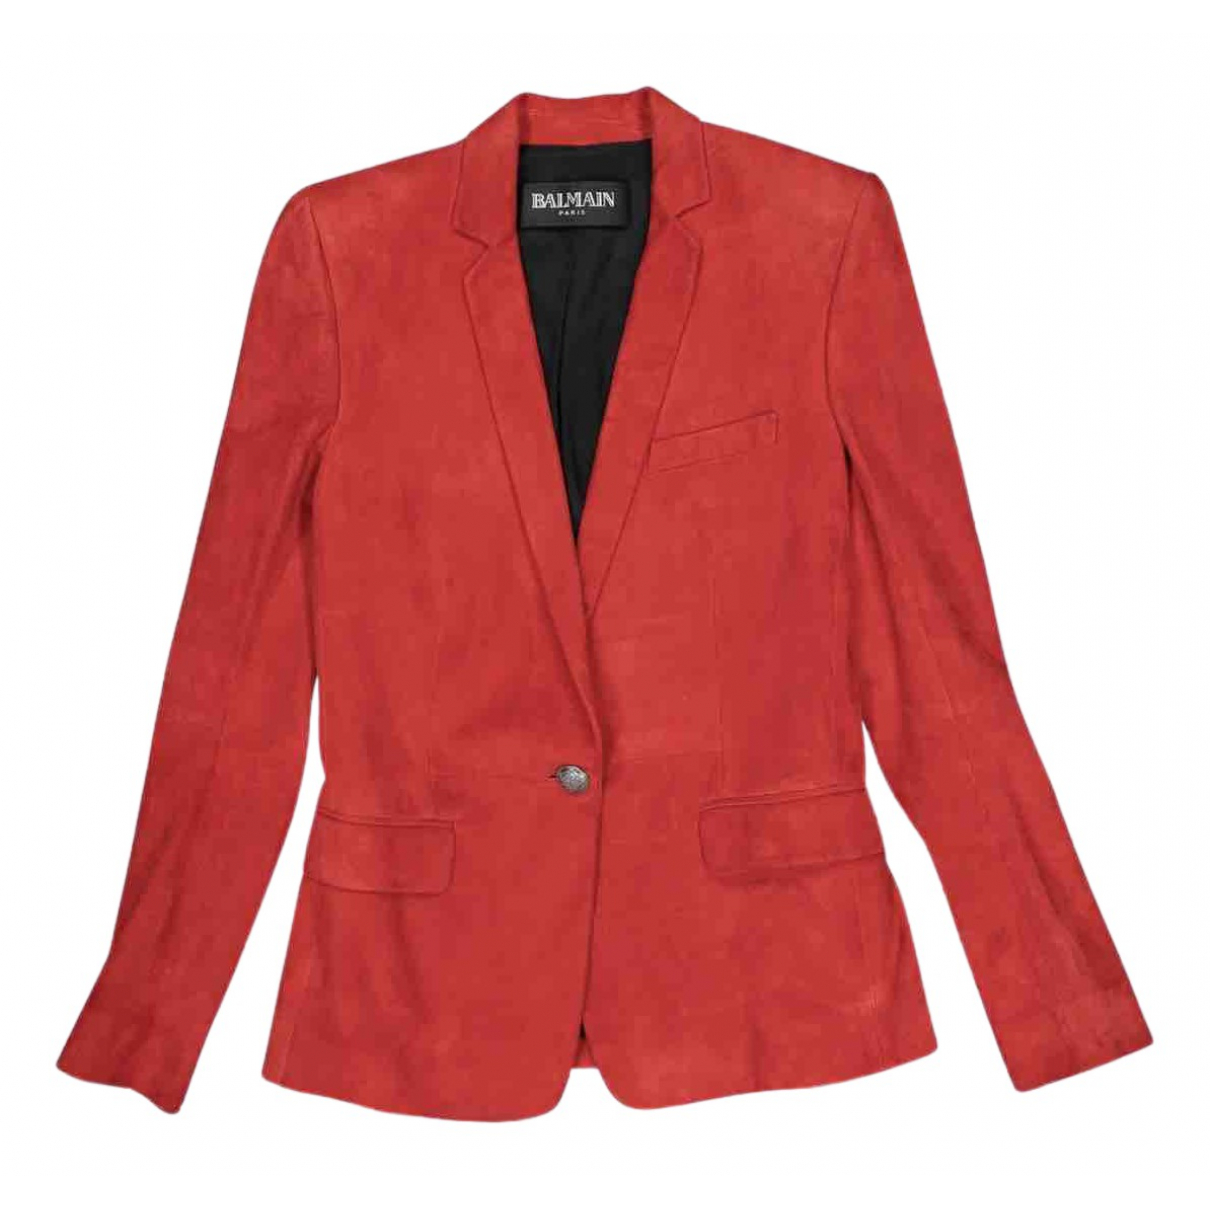 Balmain N Red Suede jacket for Women 38 FR